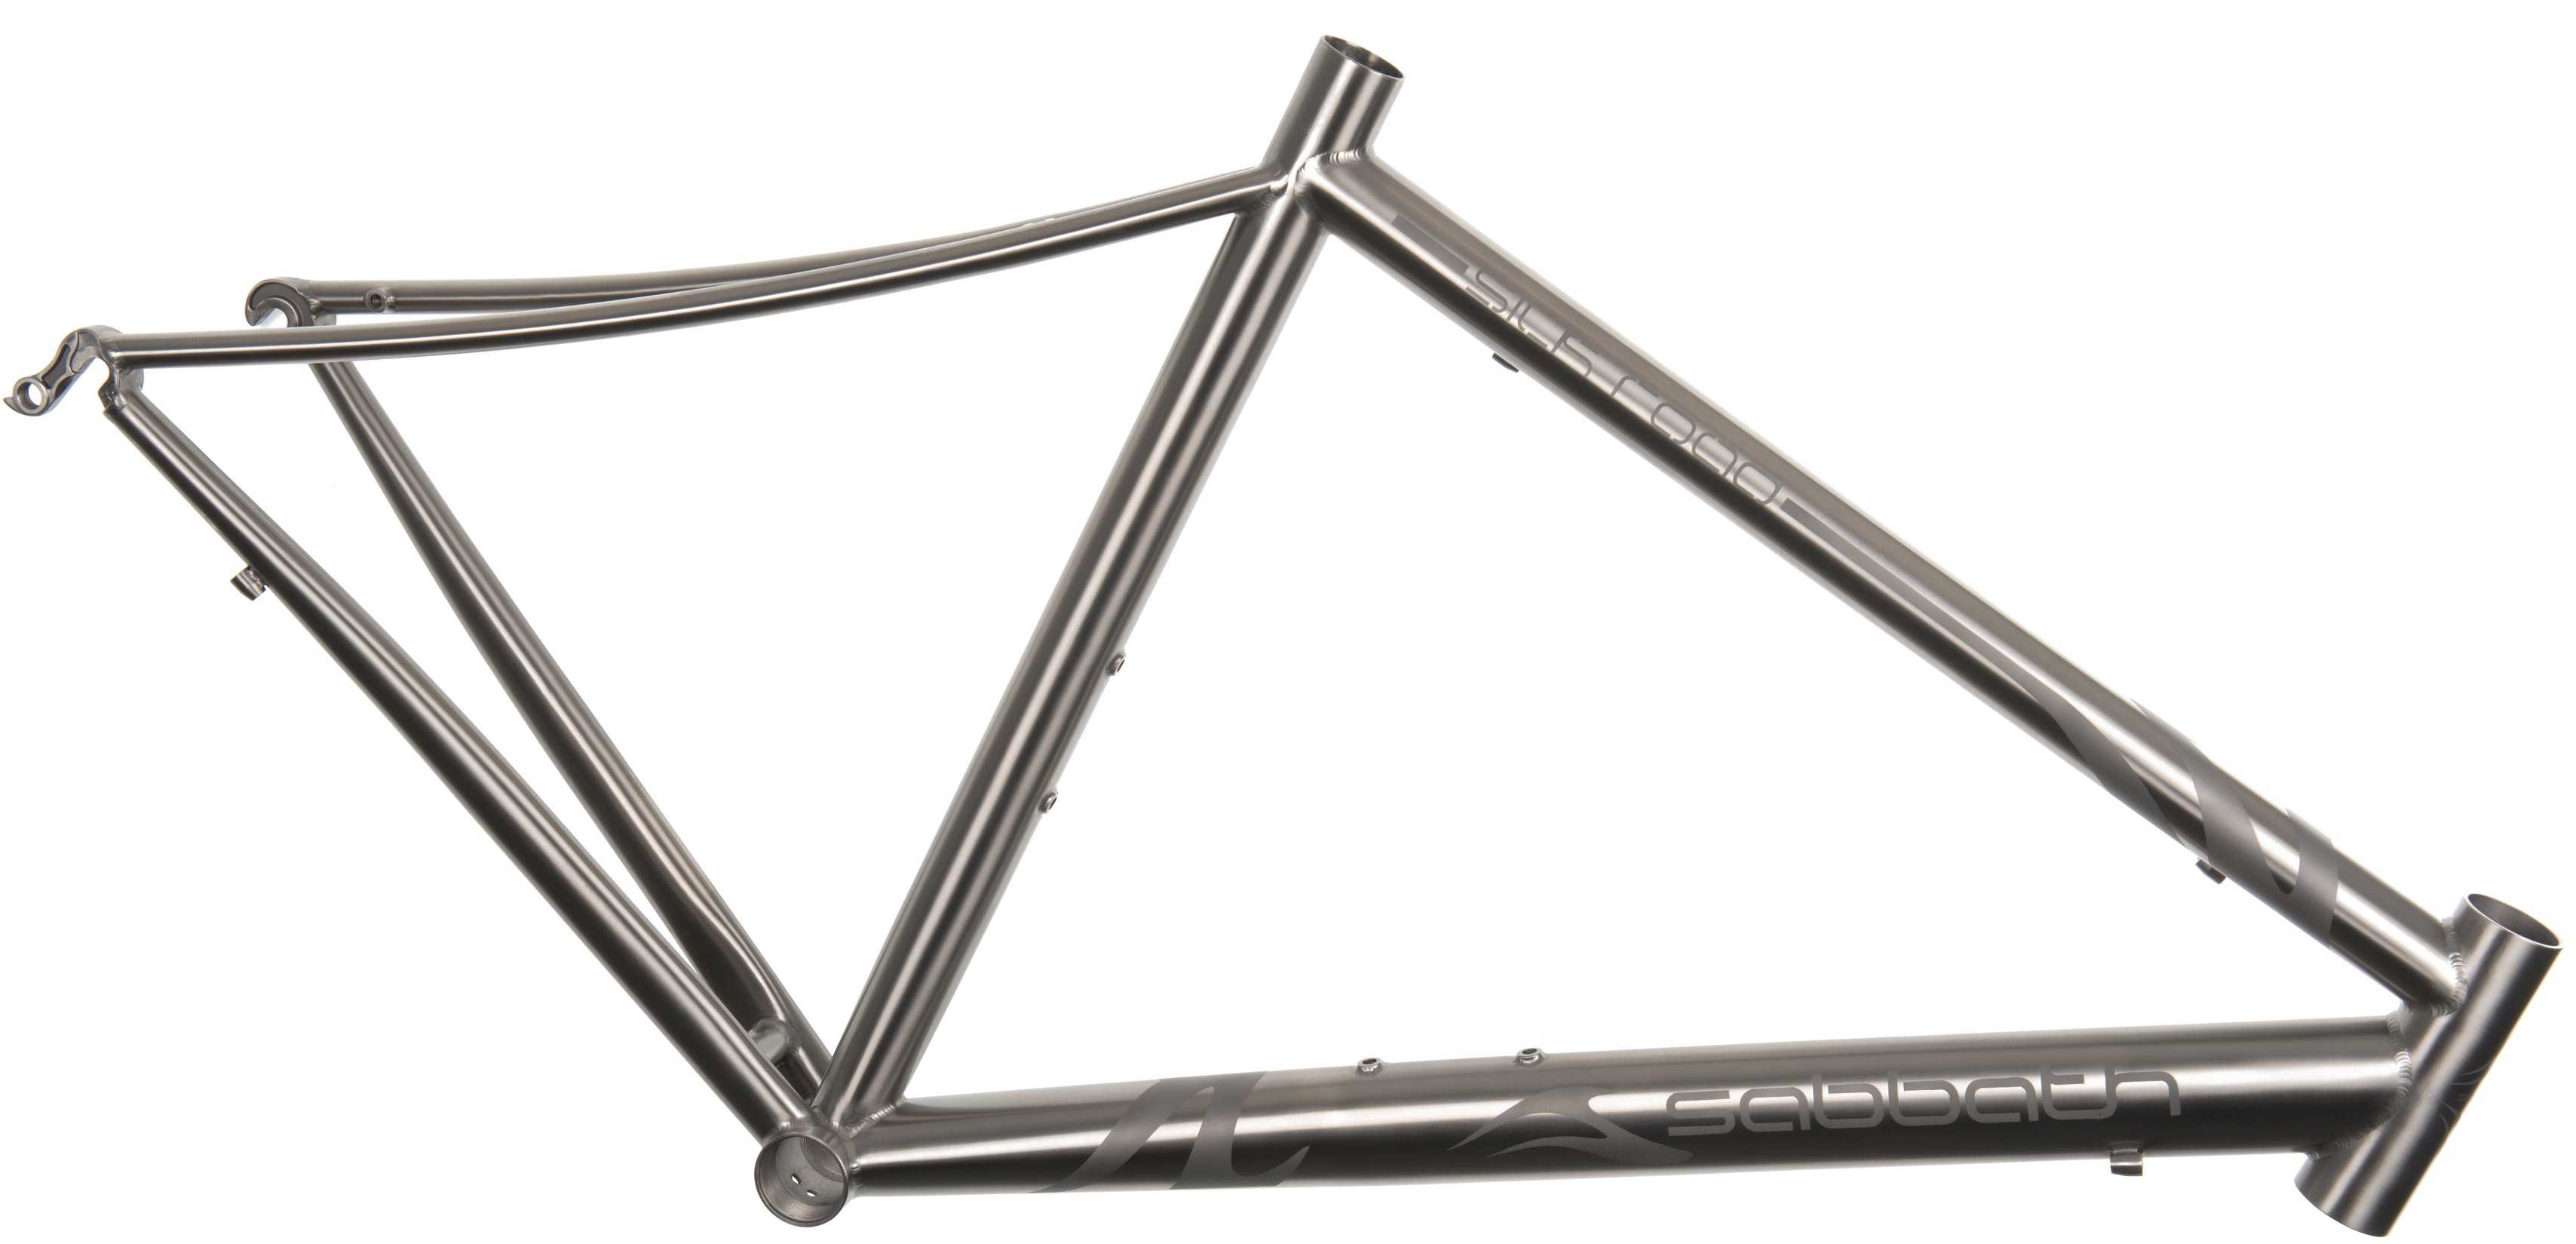 Sabbath Silk Road Titanium Road Frame